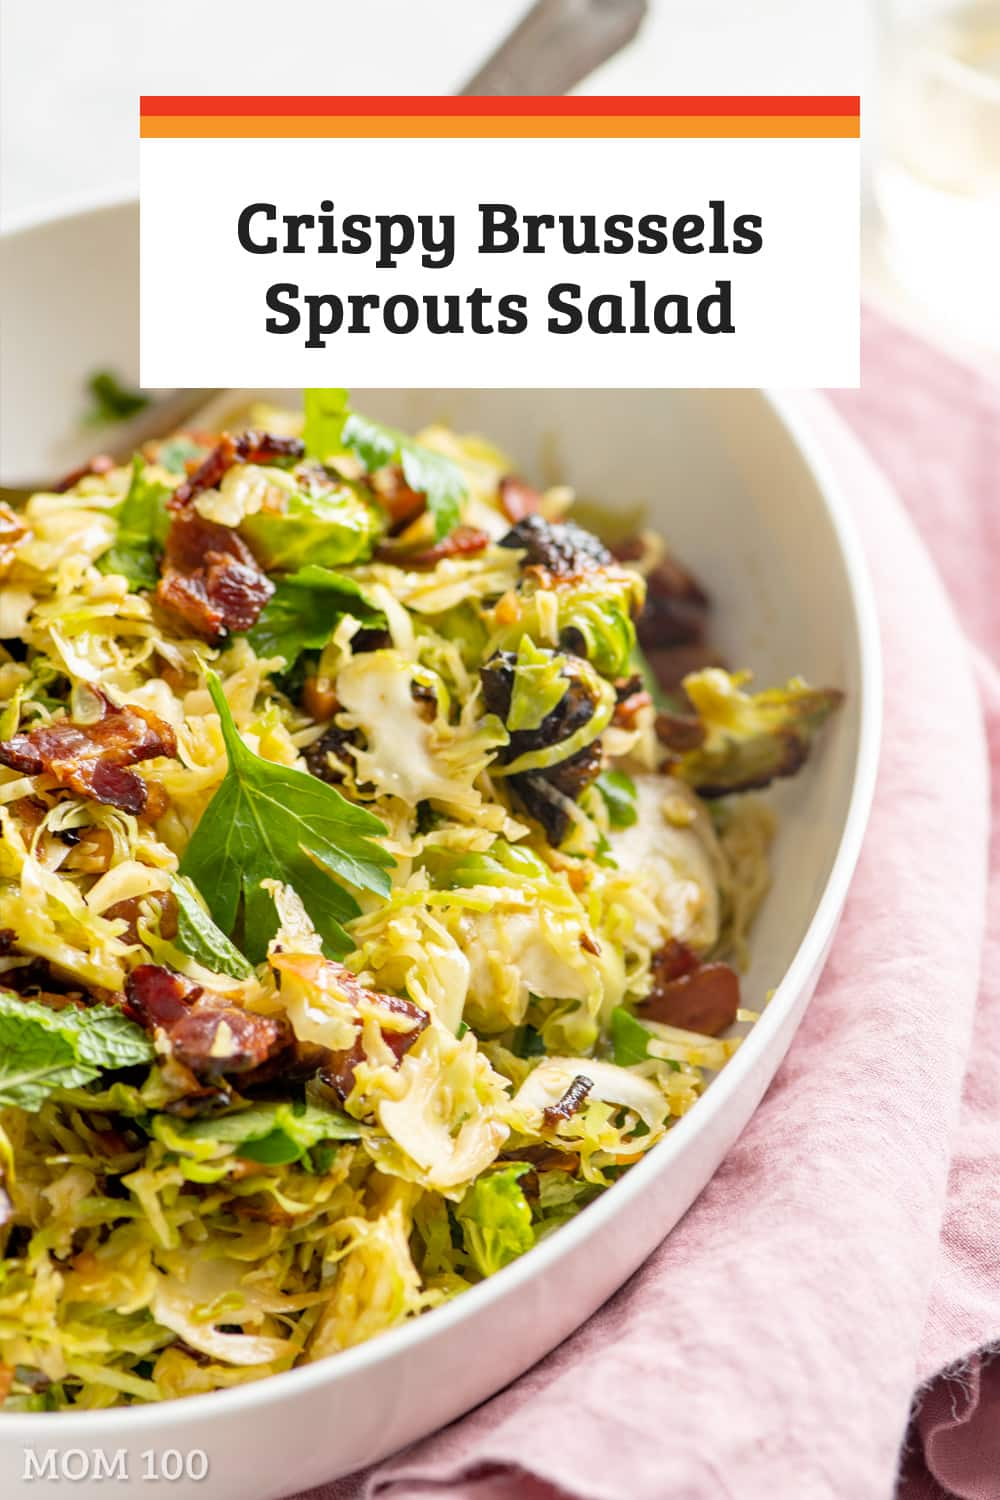 Alex Guarnascelli\'s Crispy Brussels Sprouts Salad is a sophisticated but not at all complicated Brussels sprout dish that is pretty close to divine.